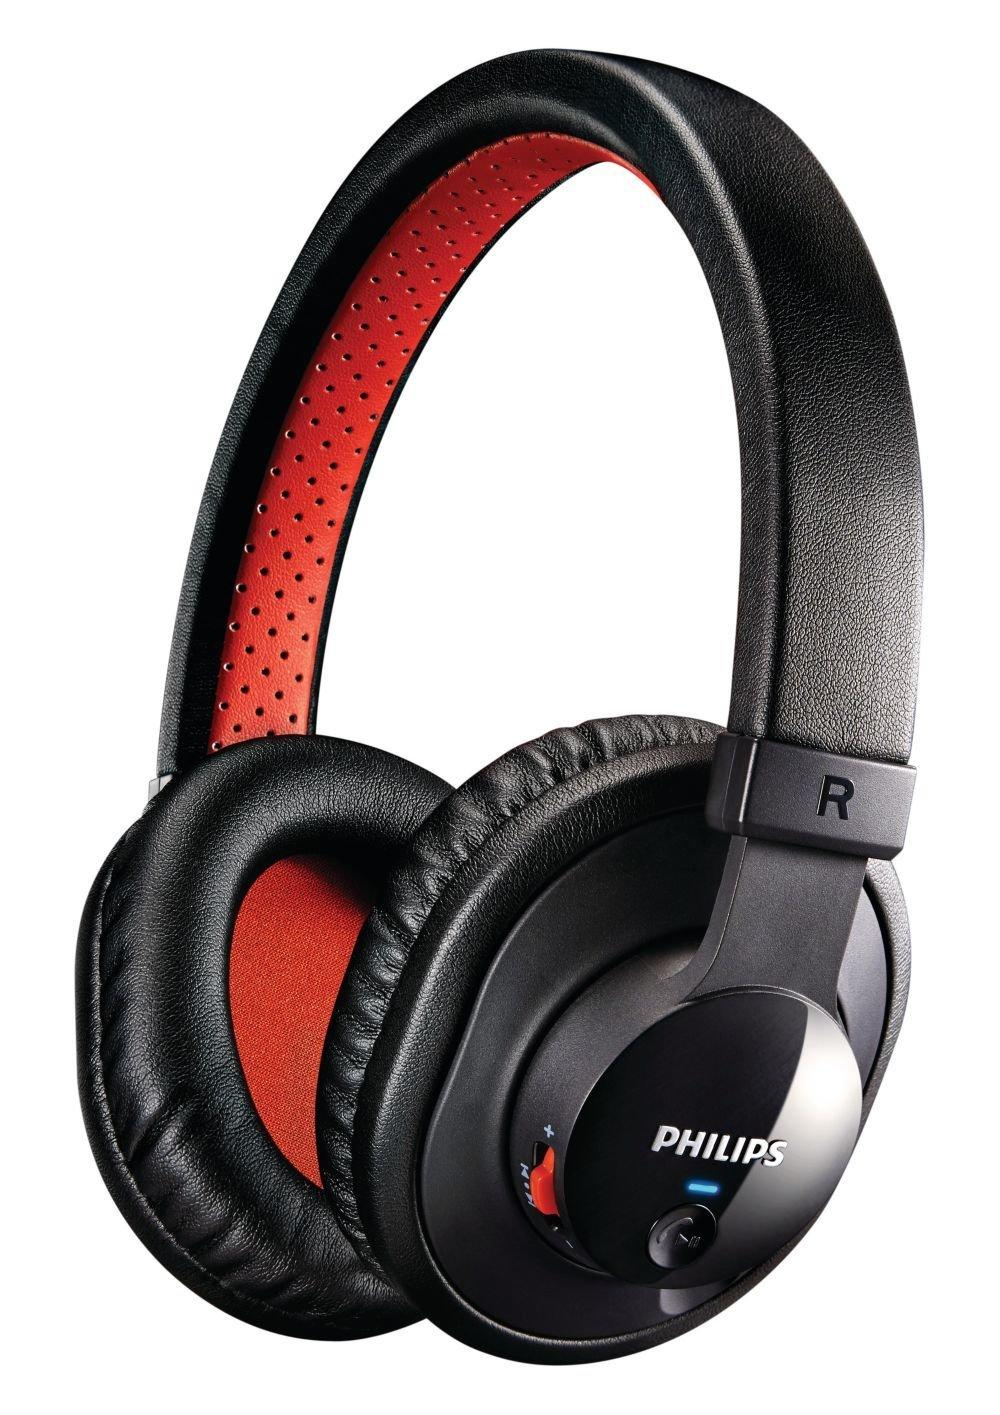 Philips SHB7000/28 Bluetooth Stereo Headset